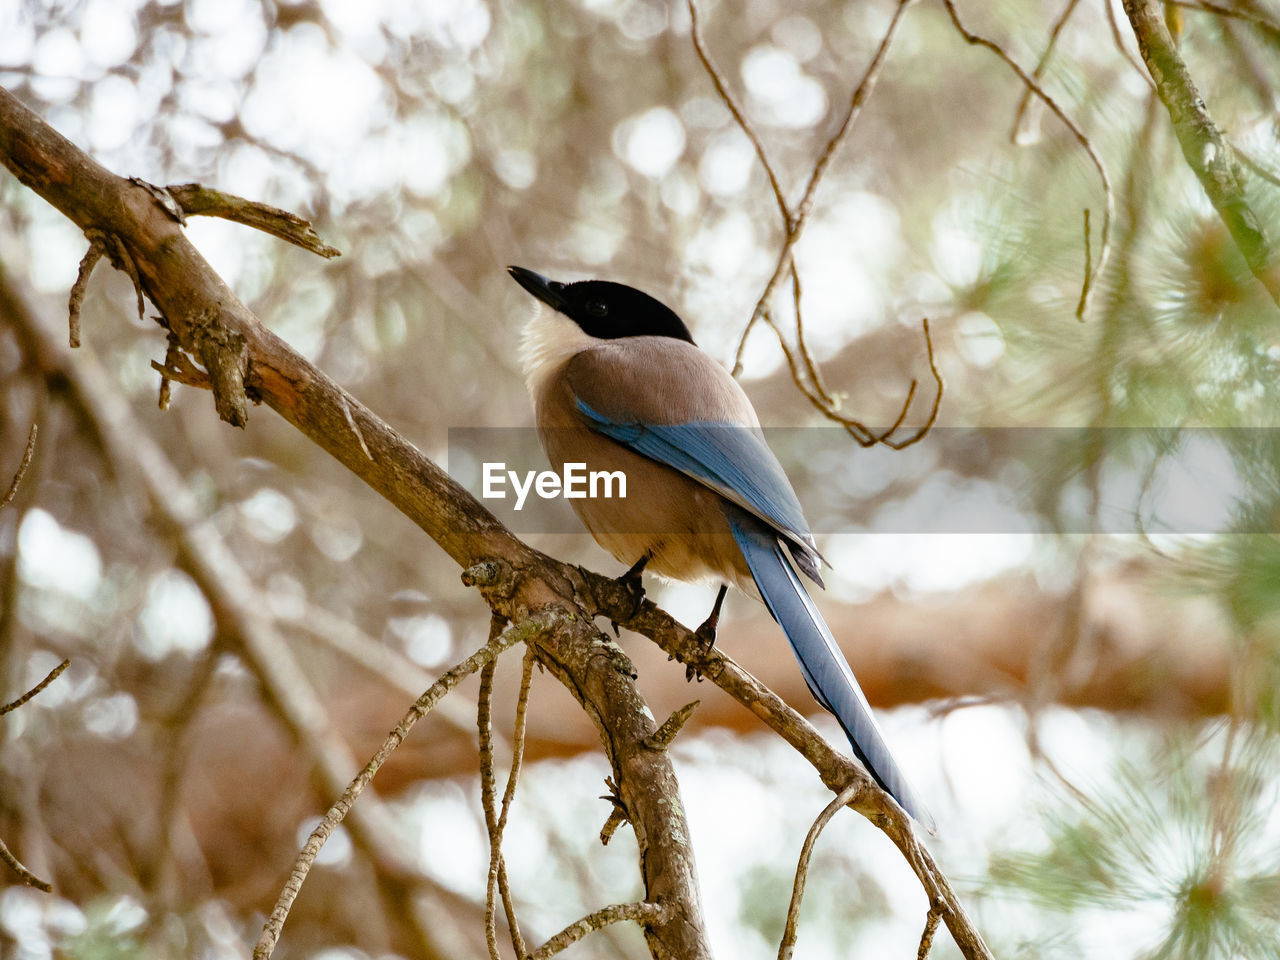 vertebrate, perching, bird, animals in the wild, animal wildlife, branch, animal themes, tree, one animal, animal, plant, no people, focus on foreground, low angle view, nature, day, beauty in nature, outdoors, close-up, selective focus